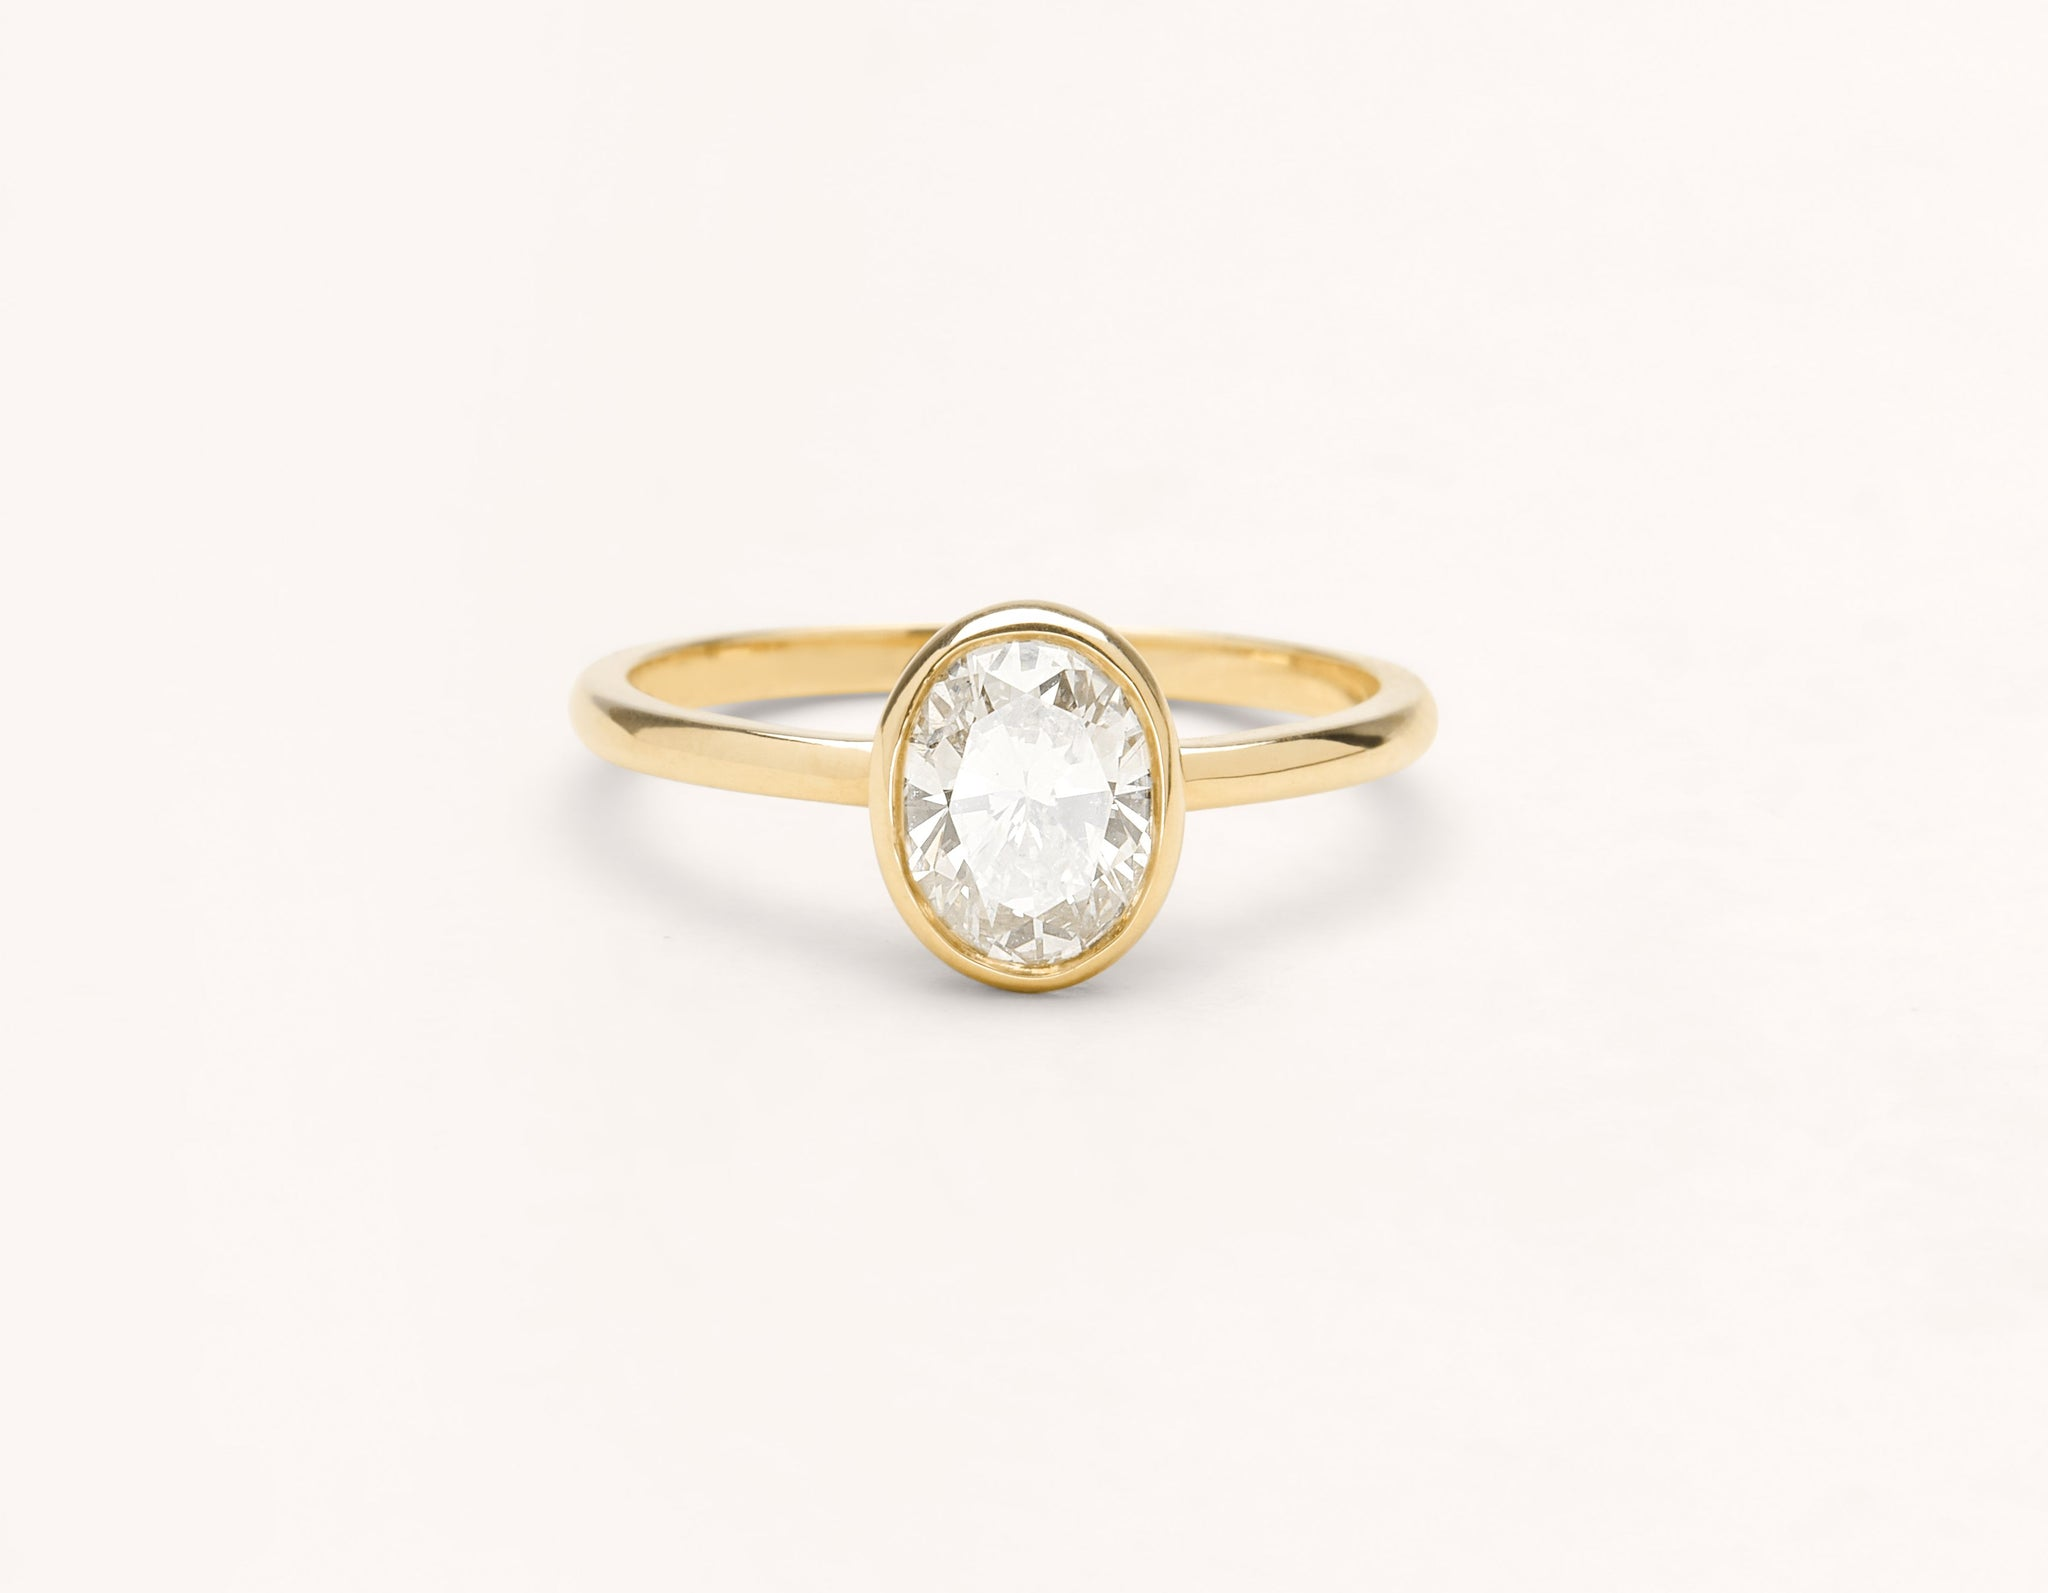 Minimalist 18k solid yellow gold Oval Bezel engagement ring 1 ct diamond Vrai and Oro